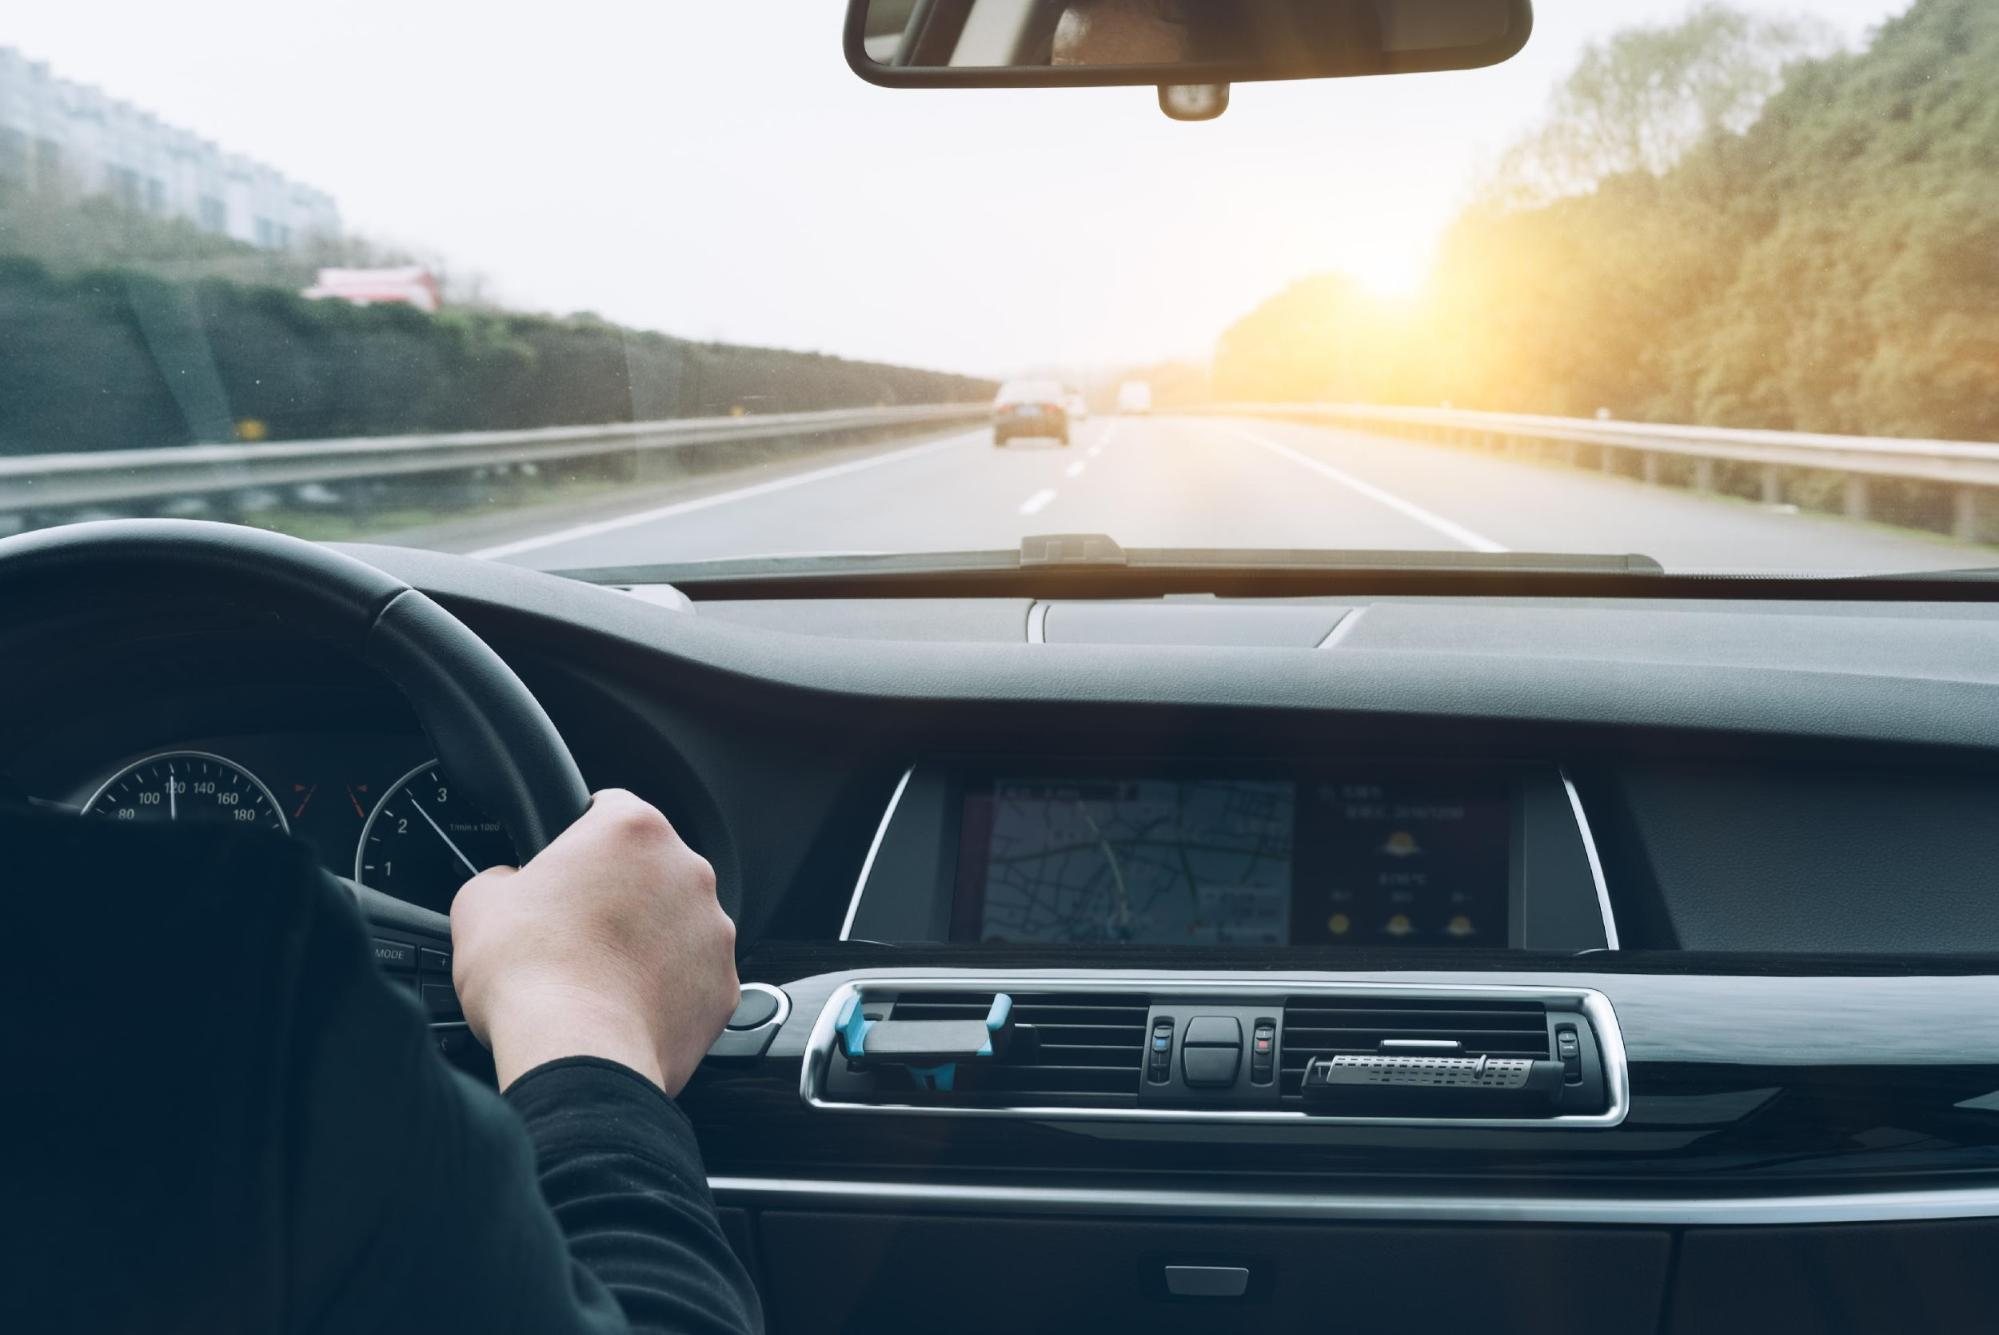 inside car view of a man driving